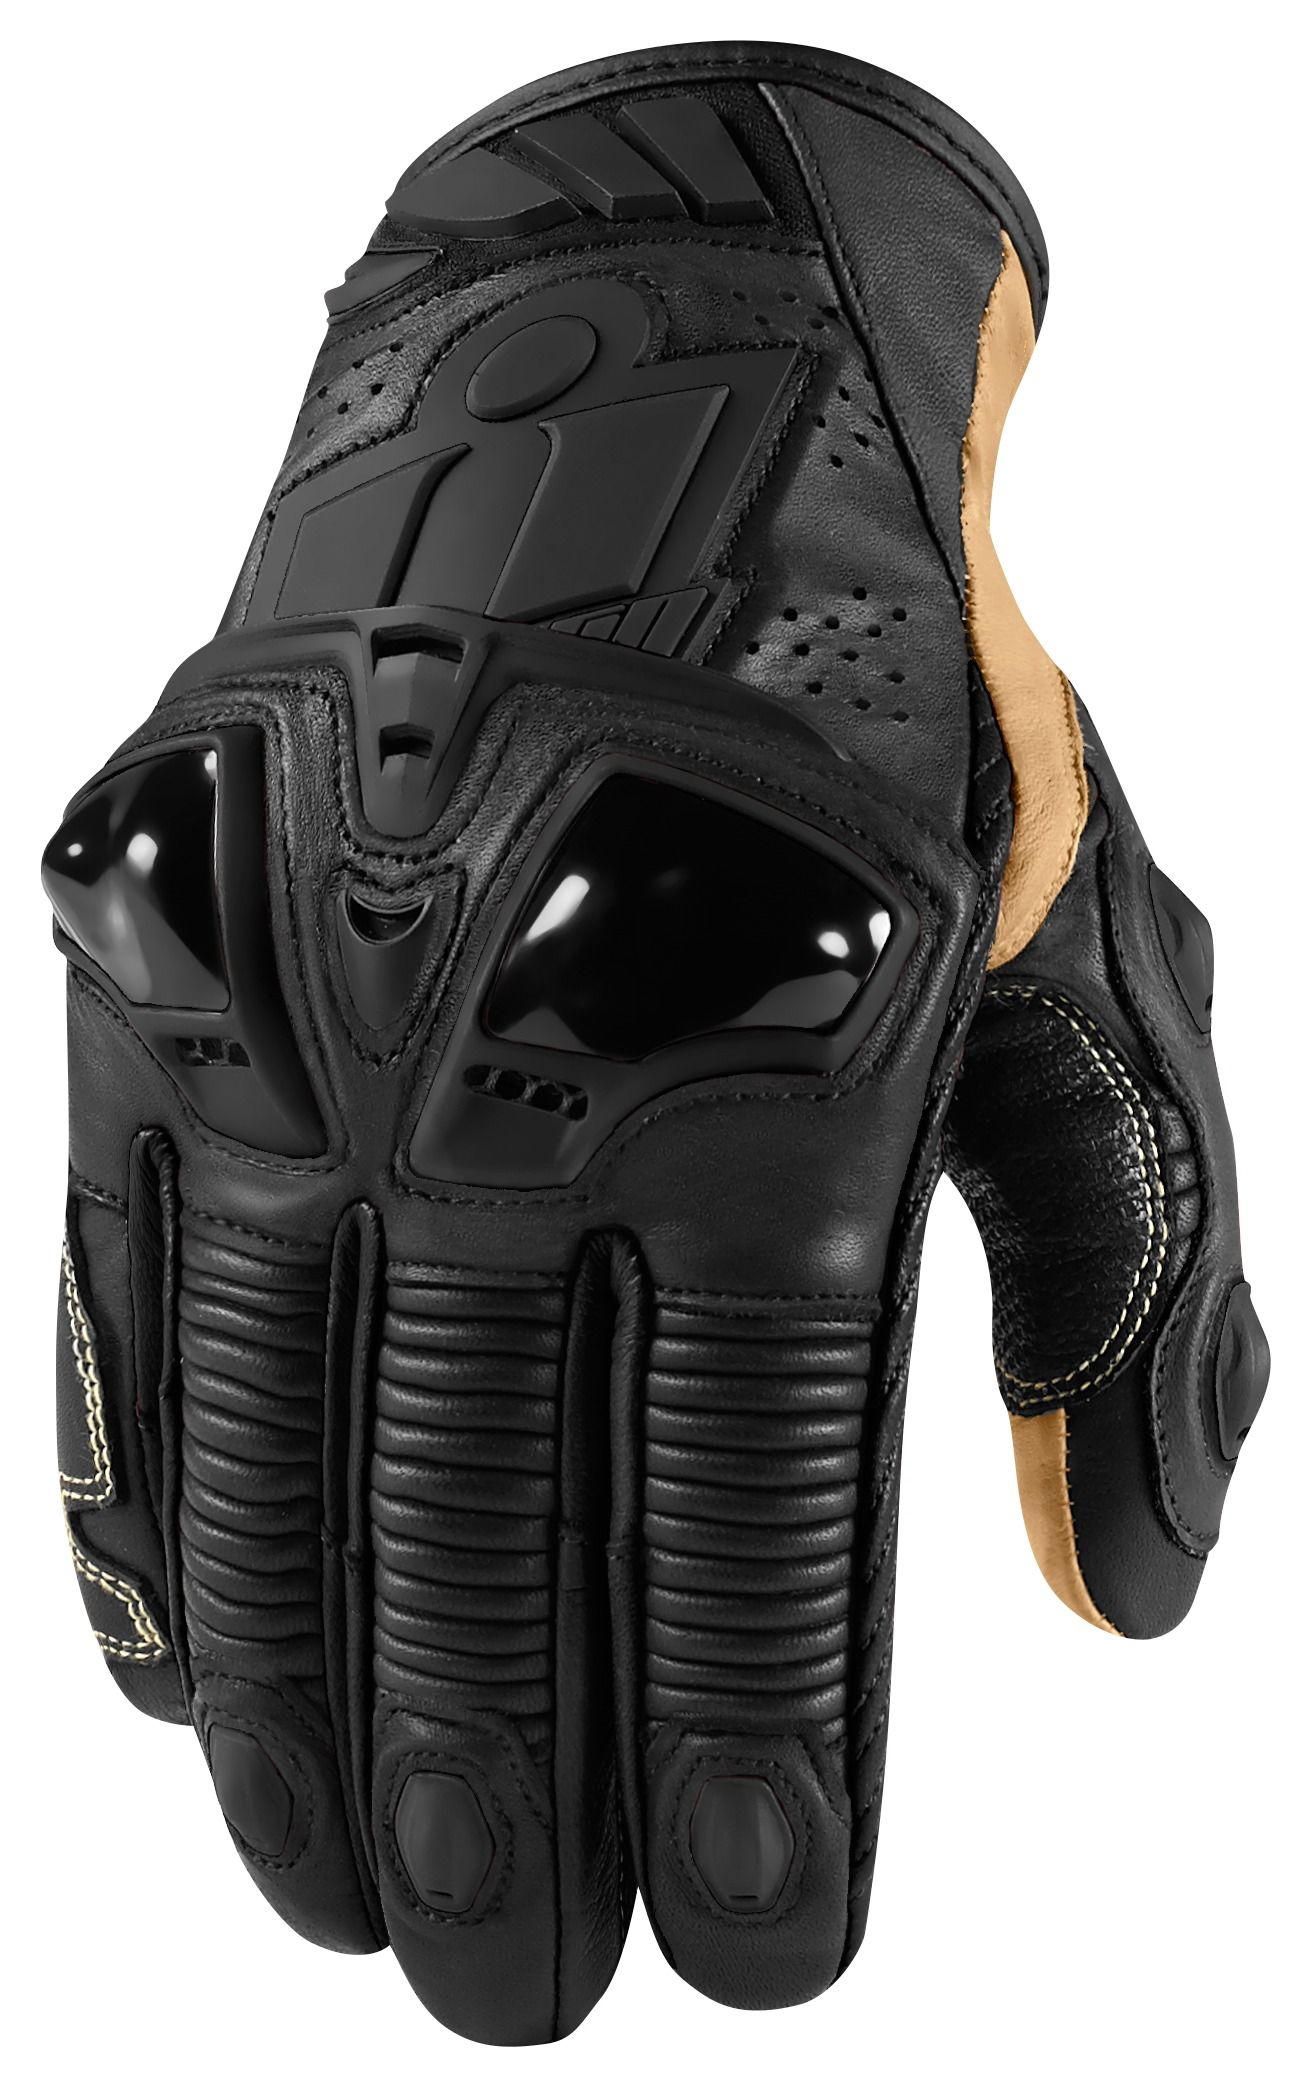 Motorcycle gloves tight or loose - Motorcycle Gloves Tight Or Loose 38